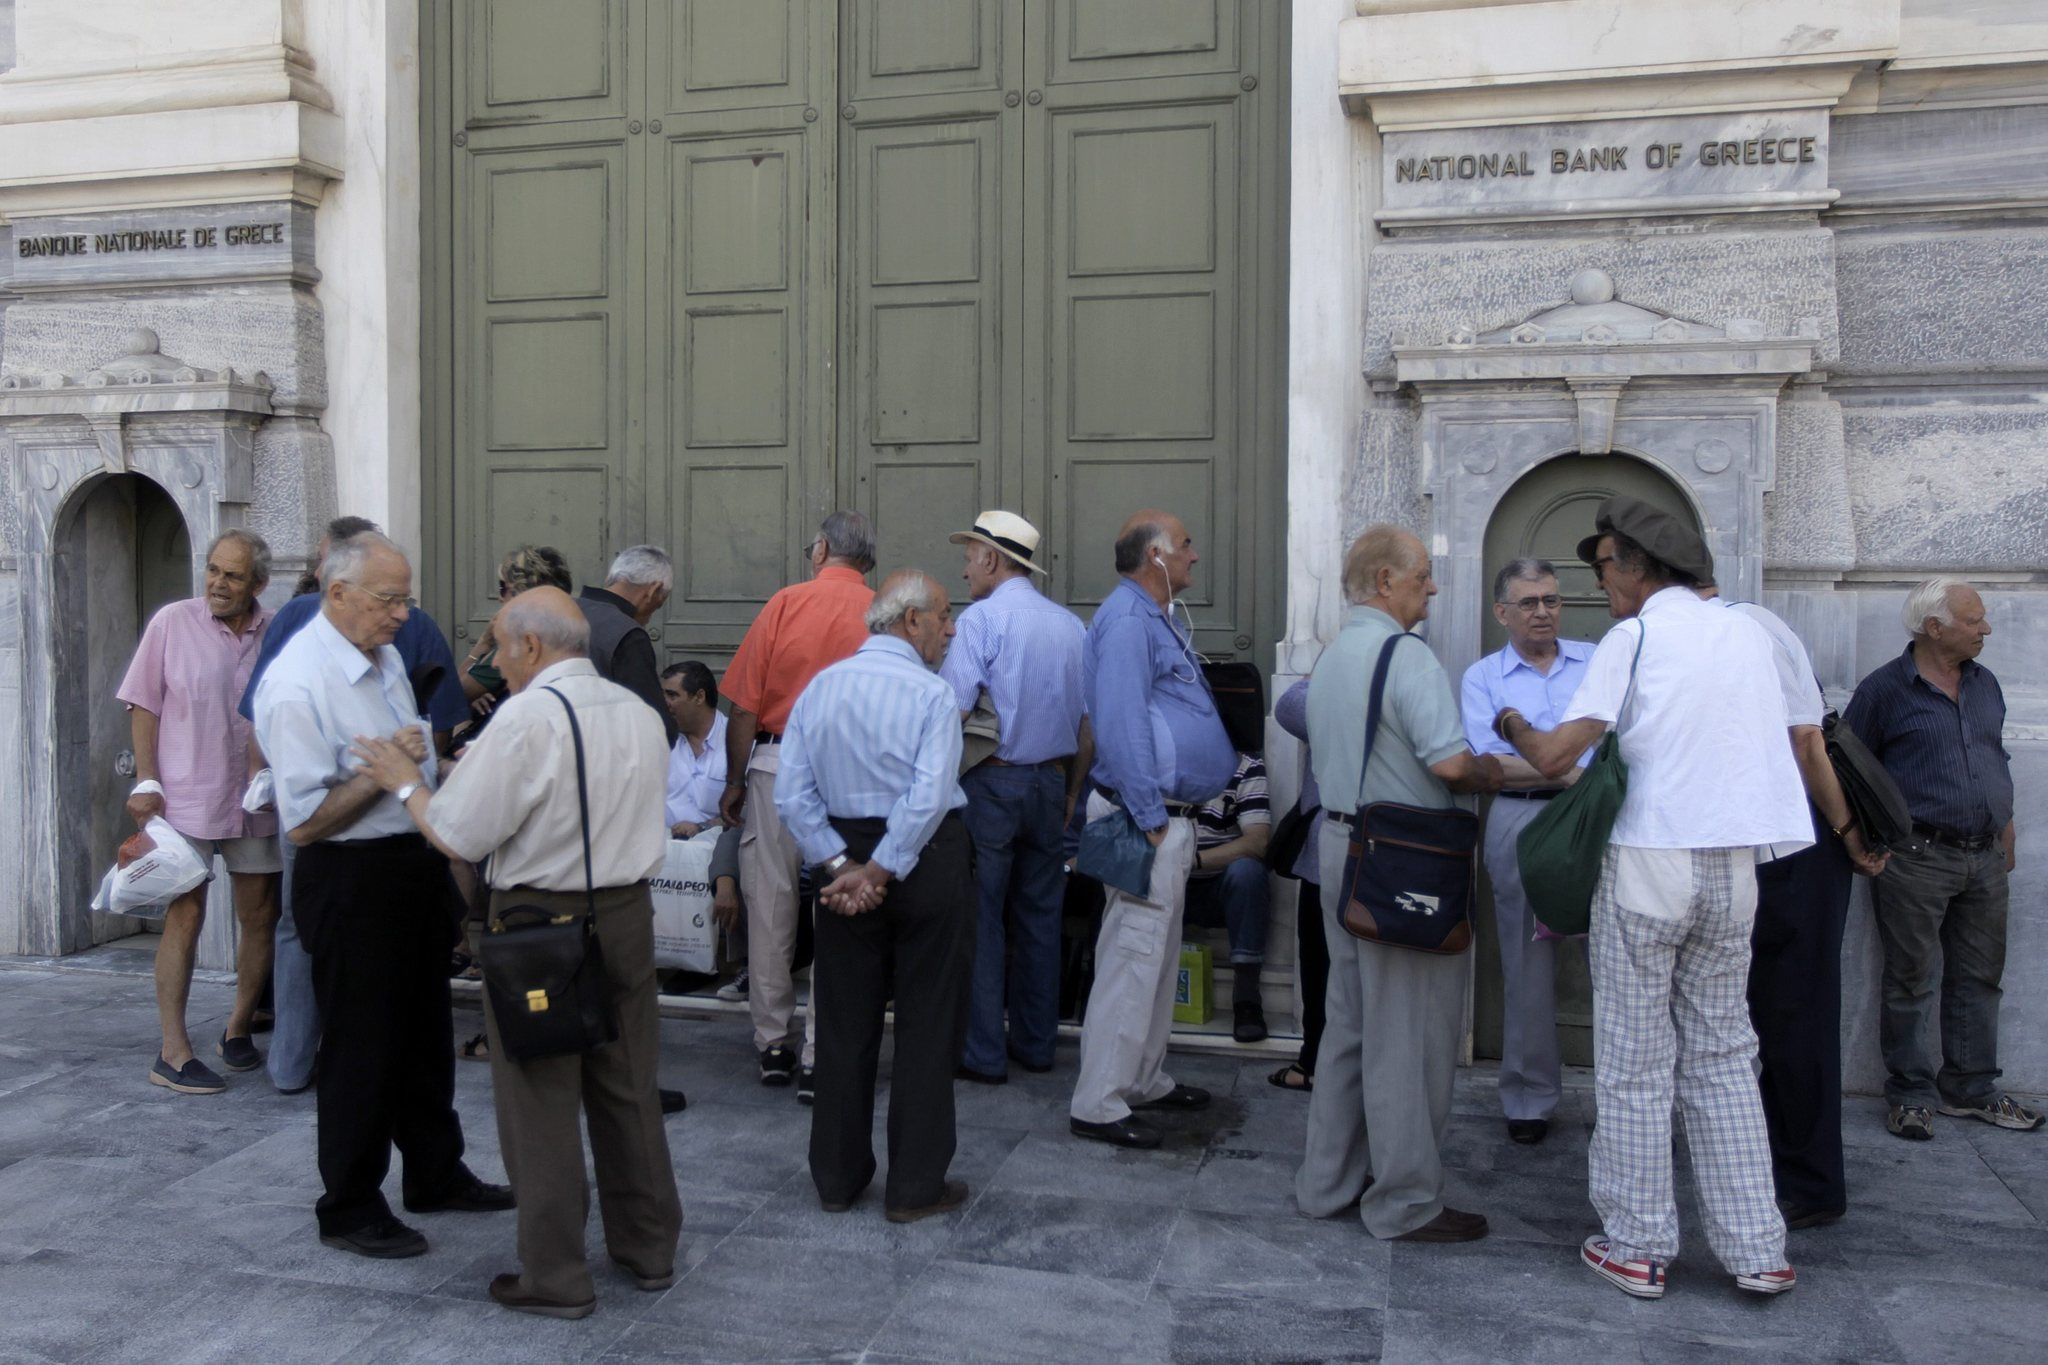 the impact of tourism in greece Greece's tourism minister has dismissed fears that the ongoing migrant crisis will put britons off visiting next year the migrant crisis has not had a major impact on tourism, despite the way some of the british media has exaggerated the problem.